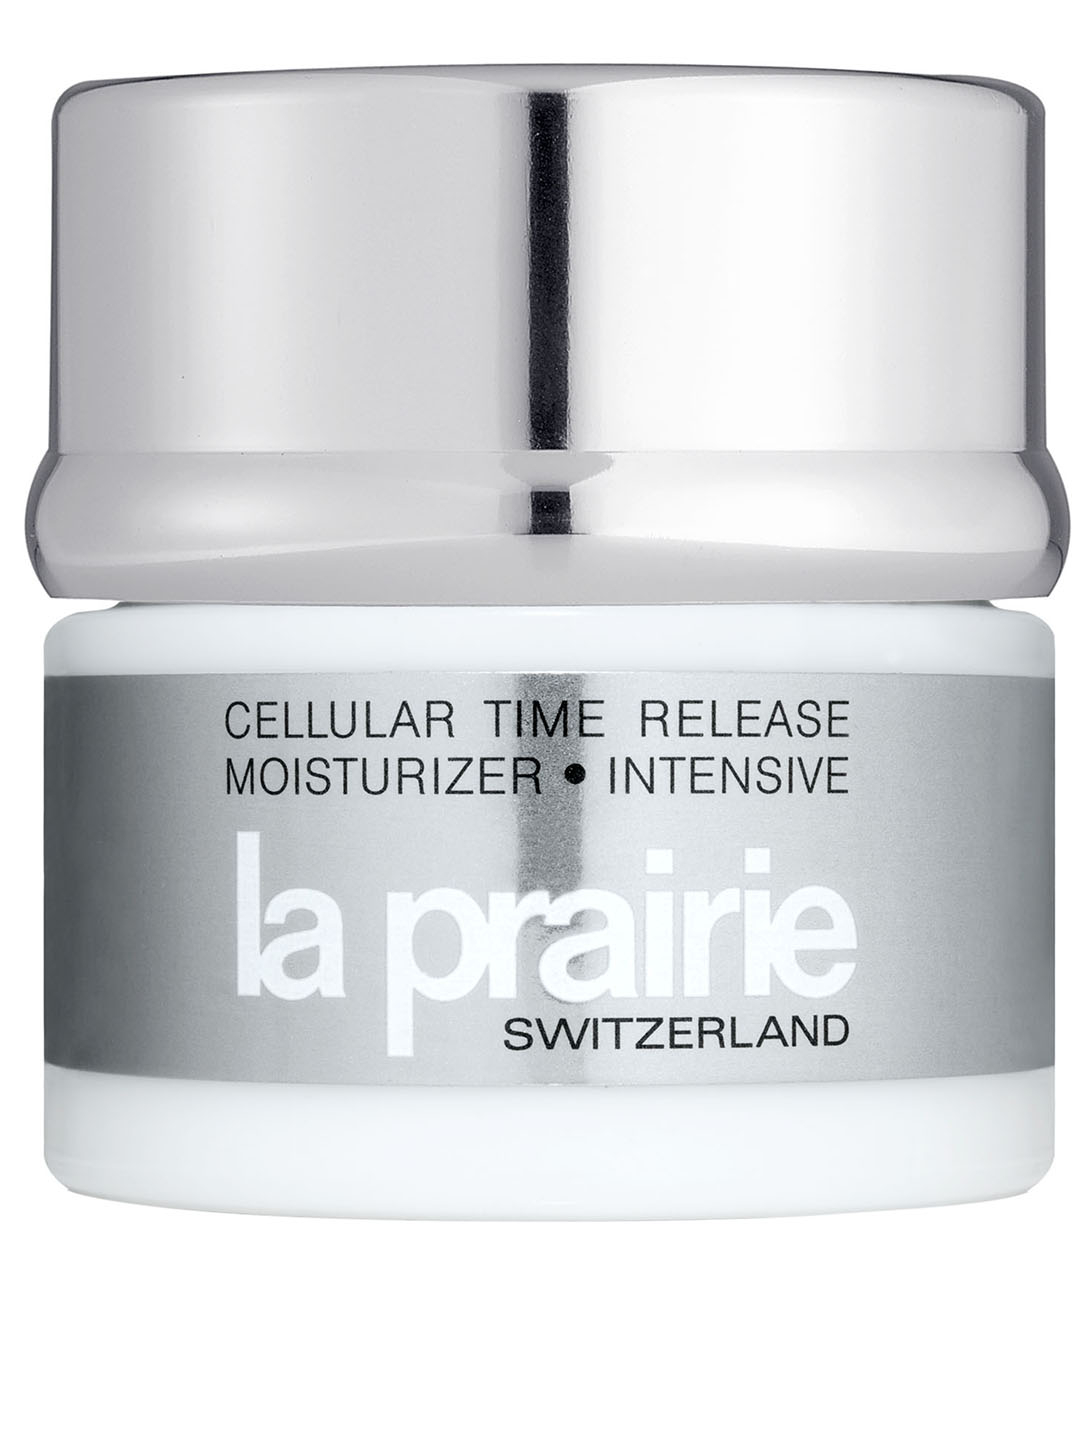 LA PRAIRIE Cellular Time Release Moisturizer – Intensive Beauty